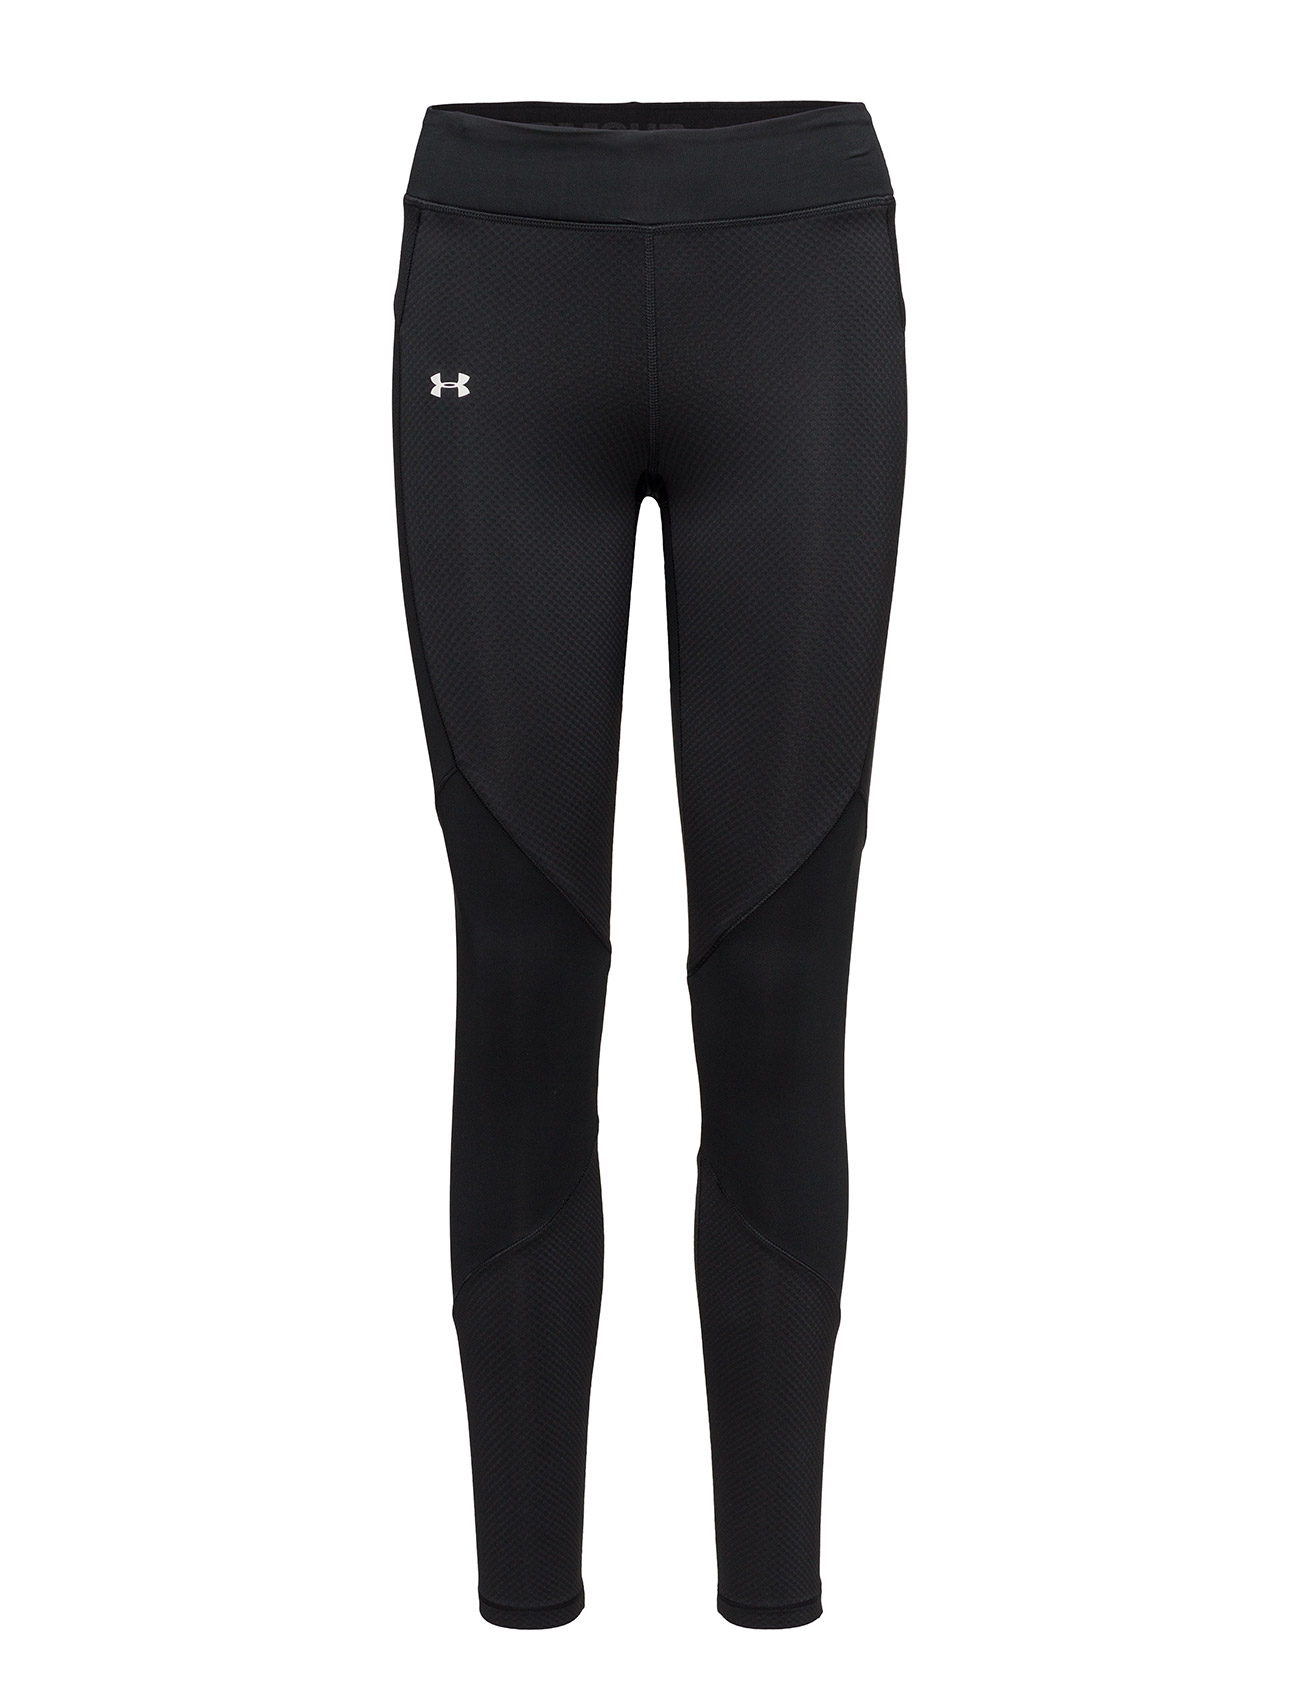 under armour Ua armour reactor legging på boozt.com dk